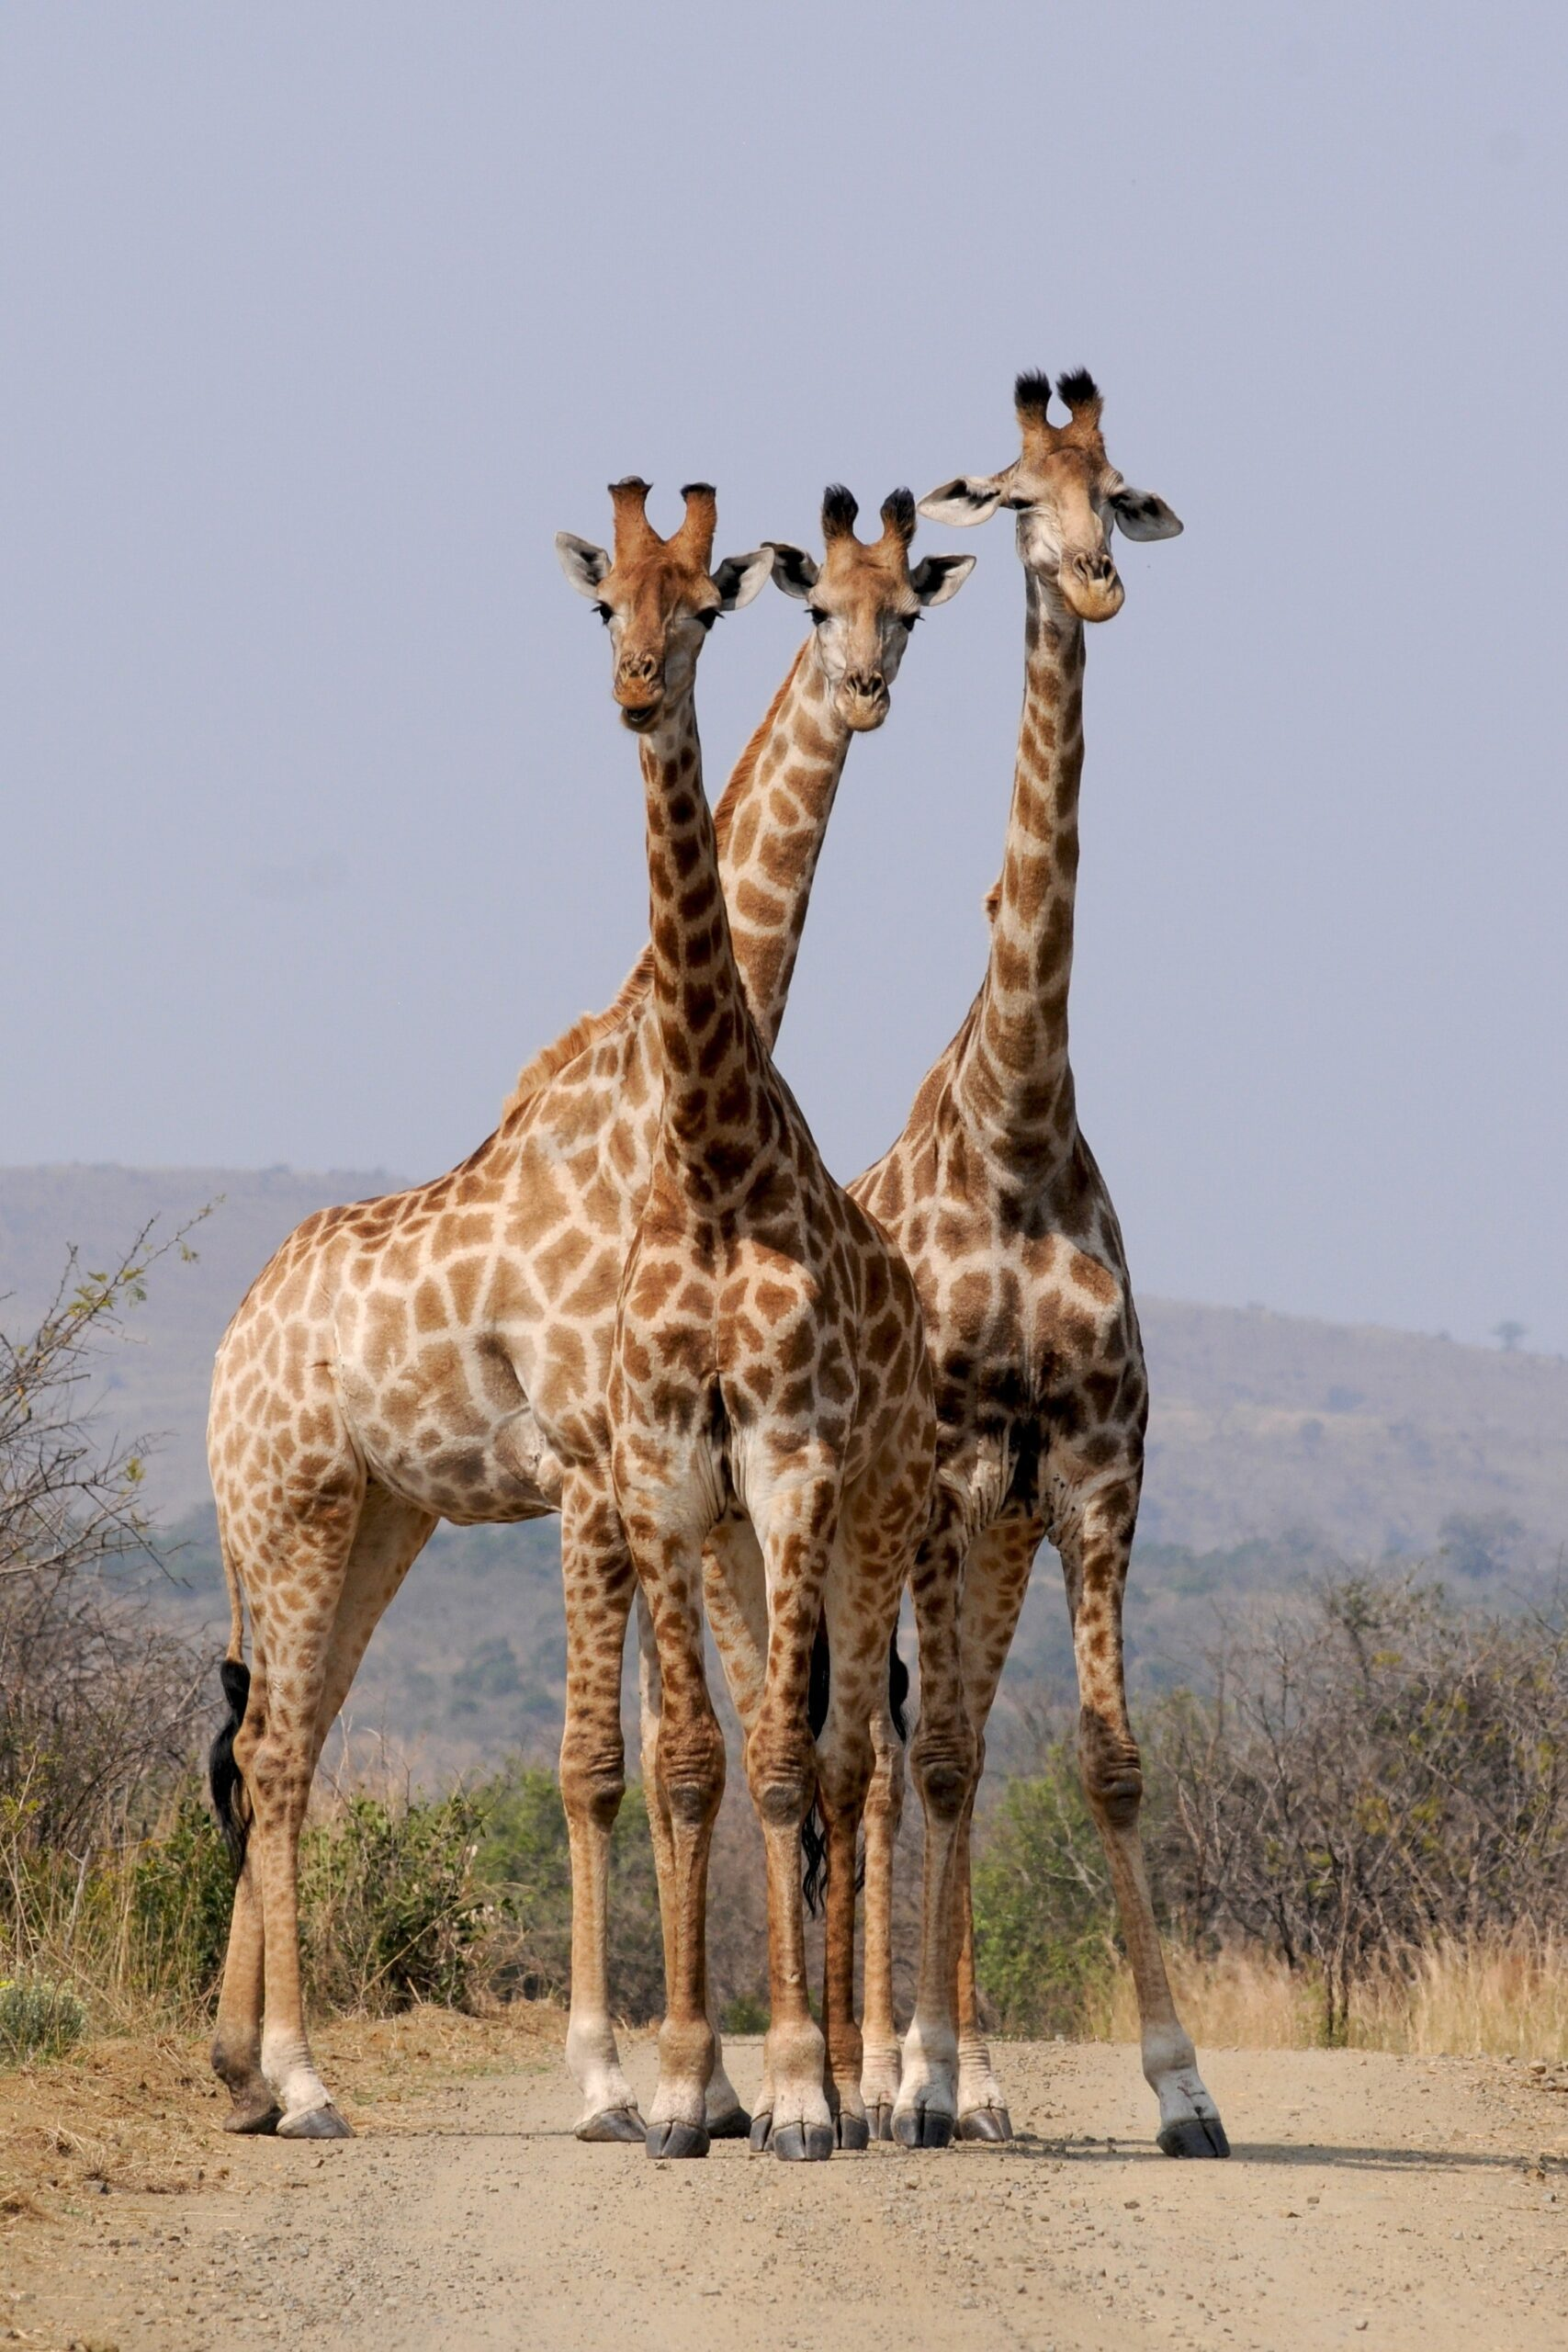 Sun & Safari-This trip includes remote overnight camping in the Serengeti National Park $3,206.00